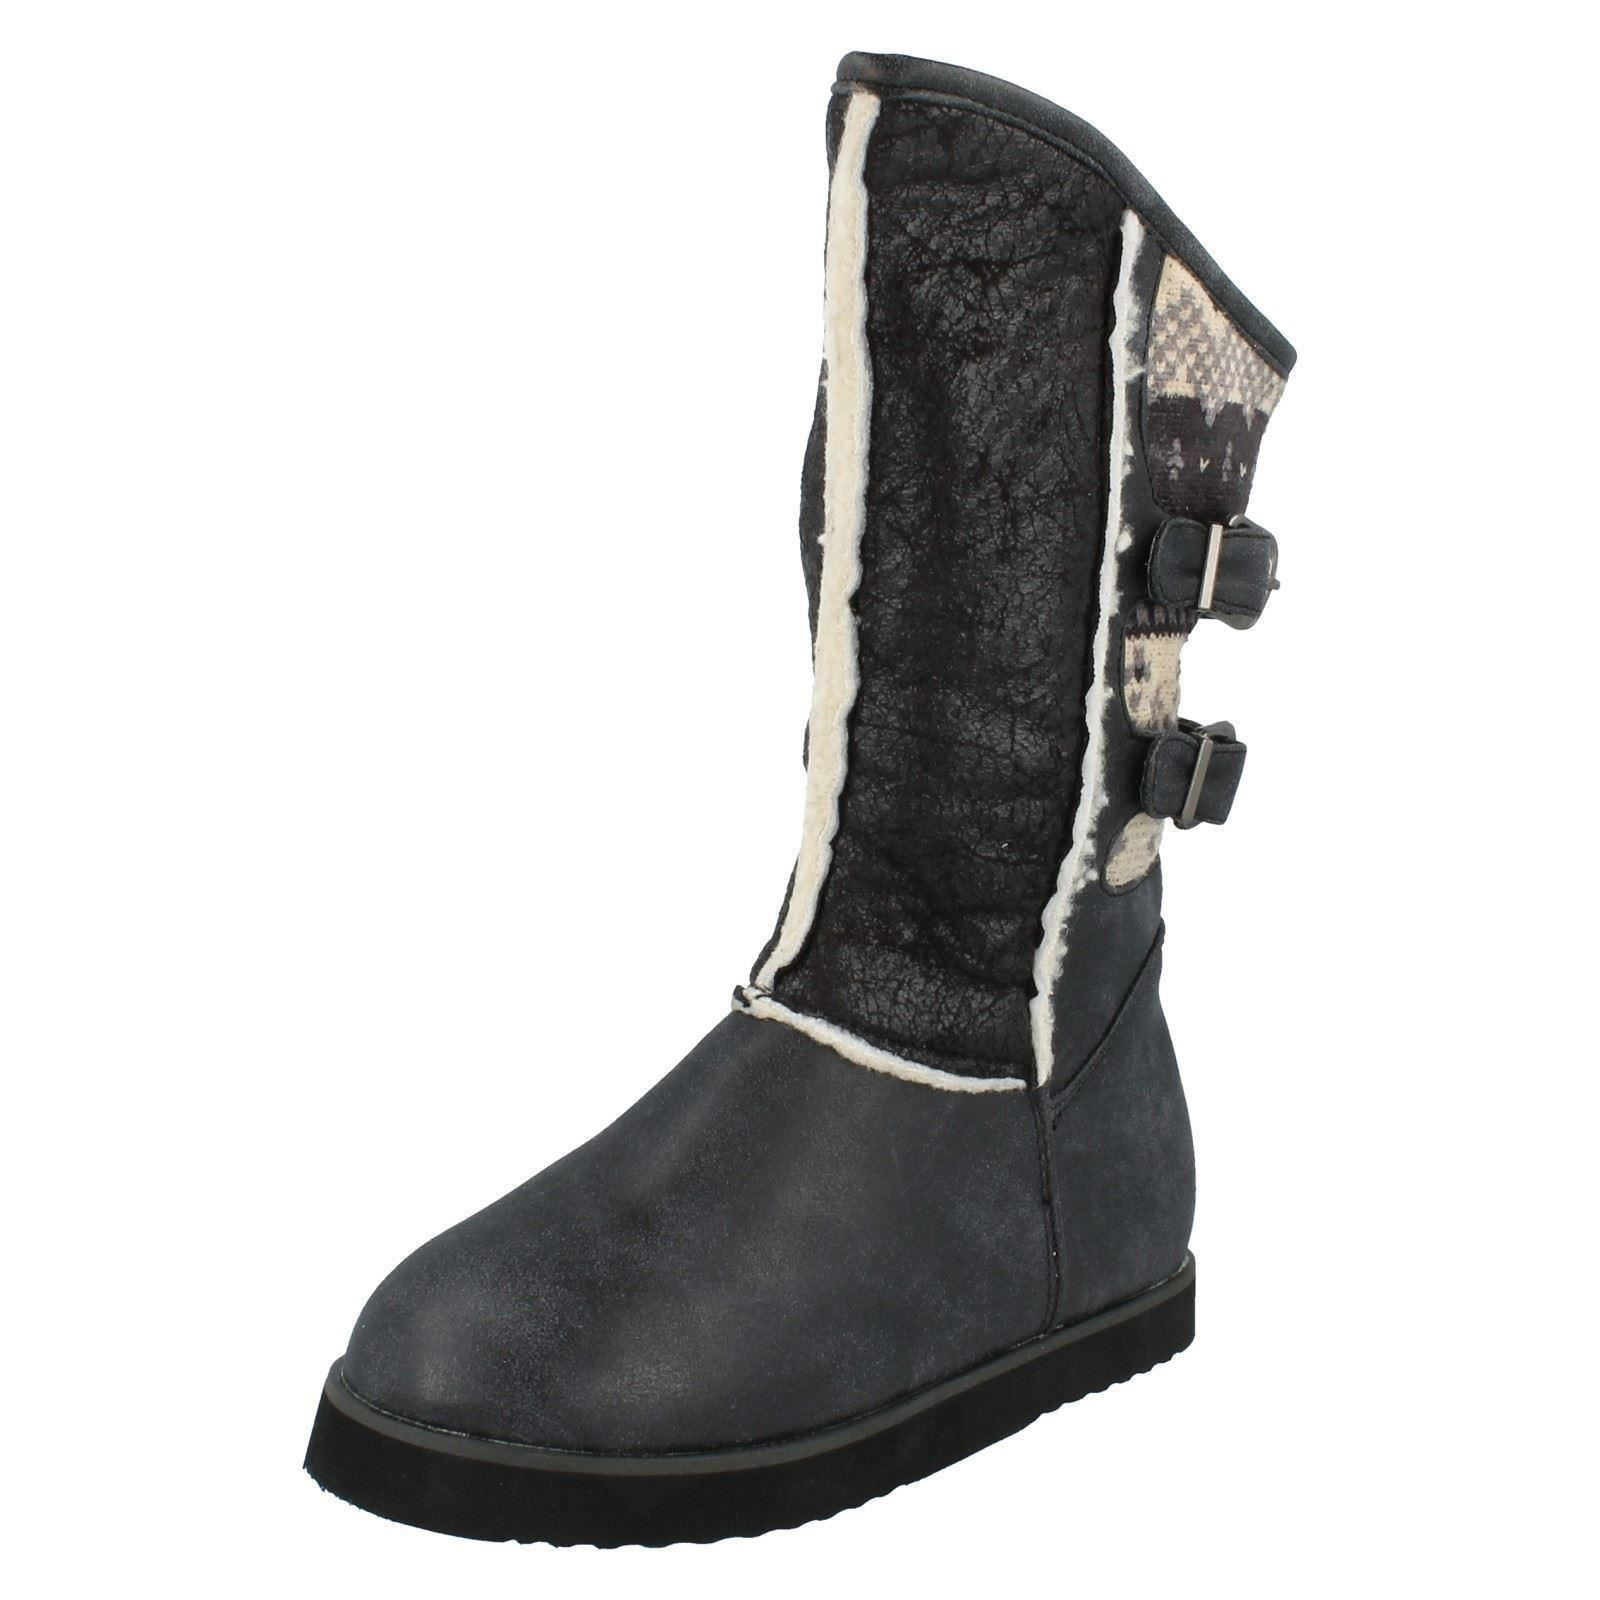 Girls Spot On Boots The Style - H4084